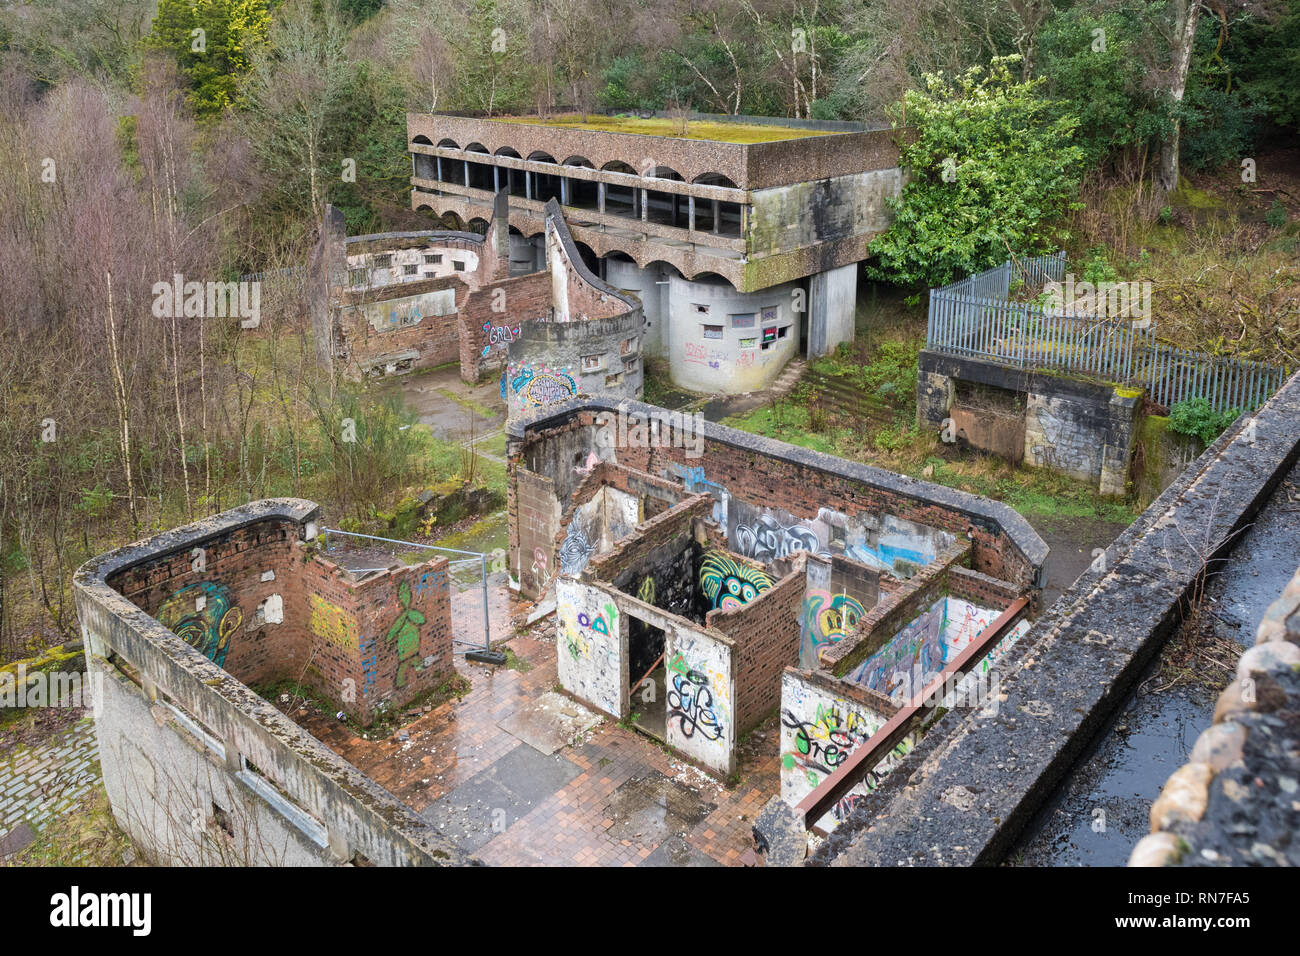 convent for nuns at St Peter's Seminary in 2019 - a derelict A listed brutalist style building and former priest's training centre, Cardross, Scotland - Stock Image